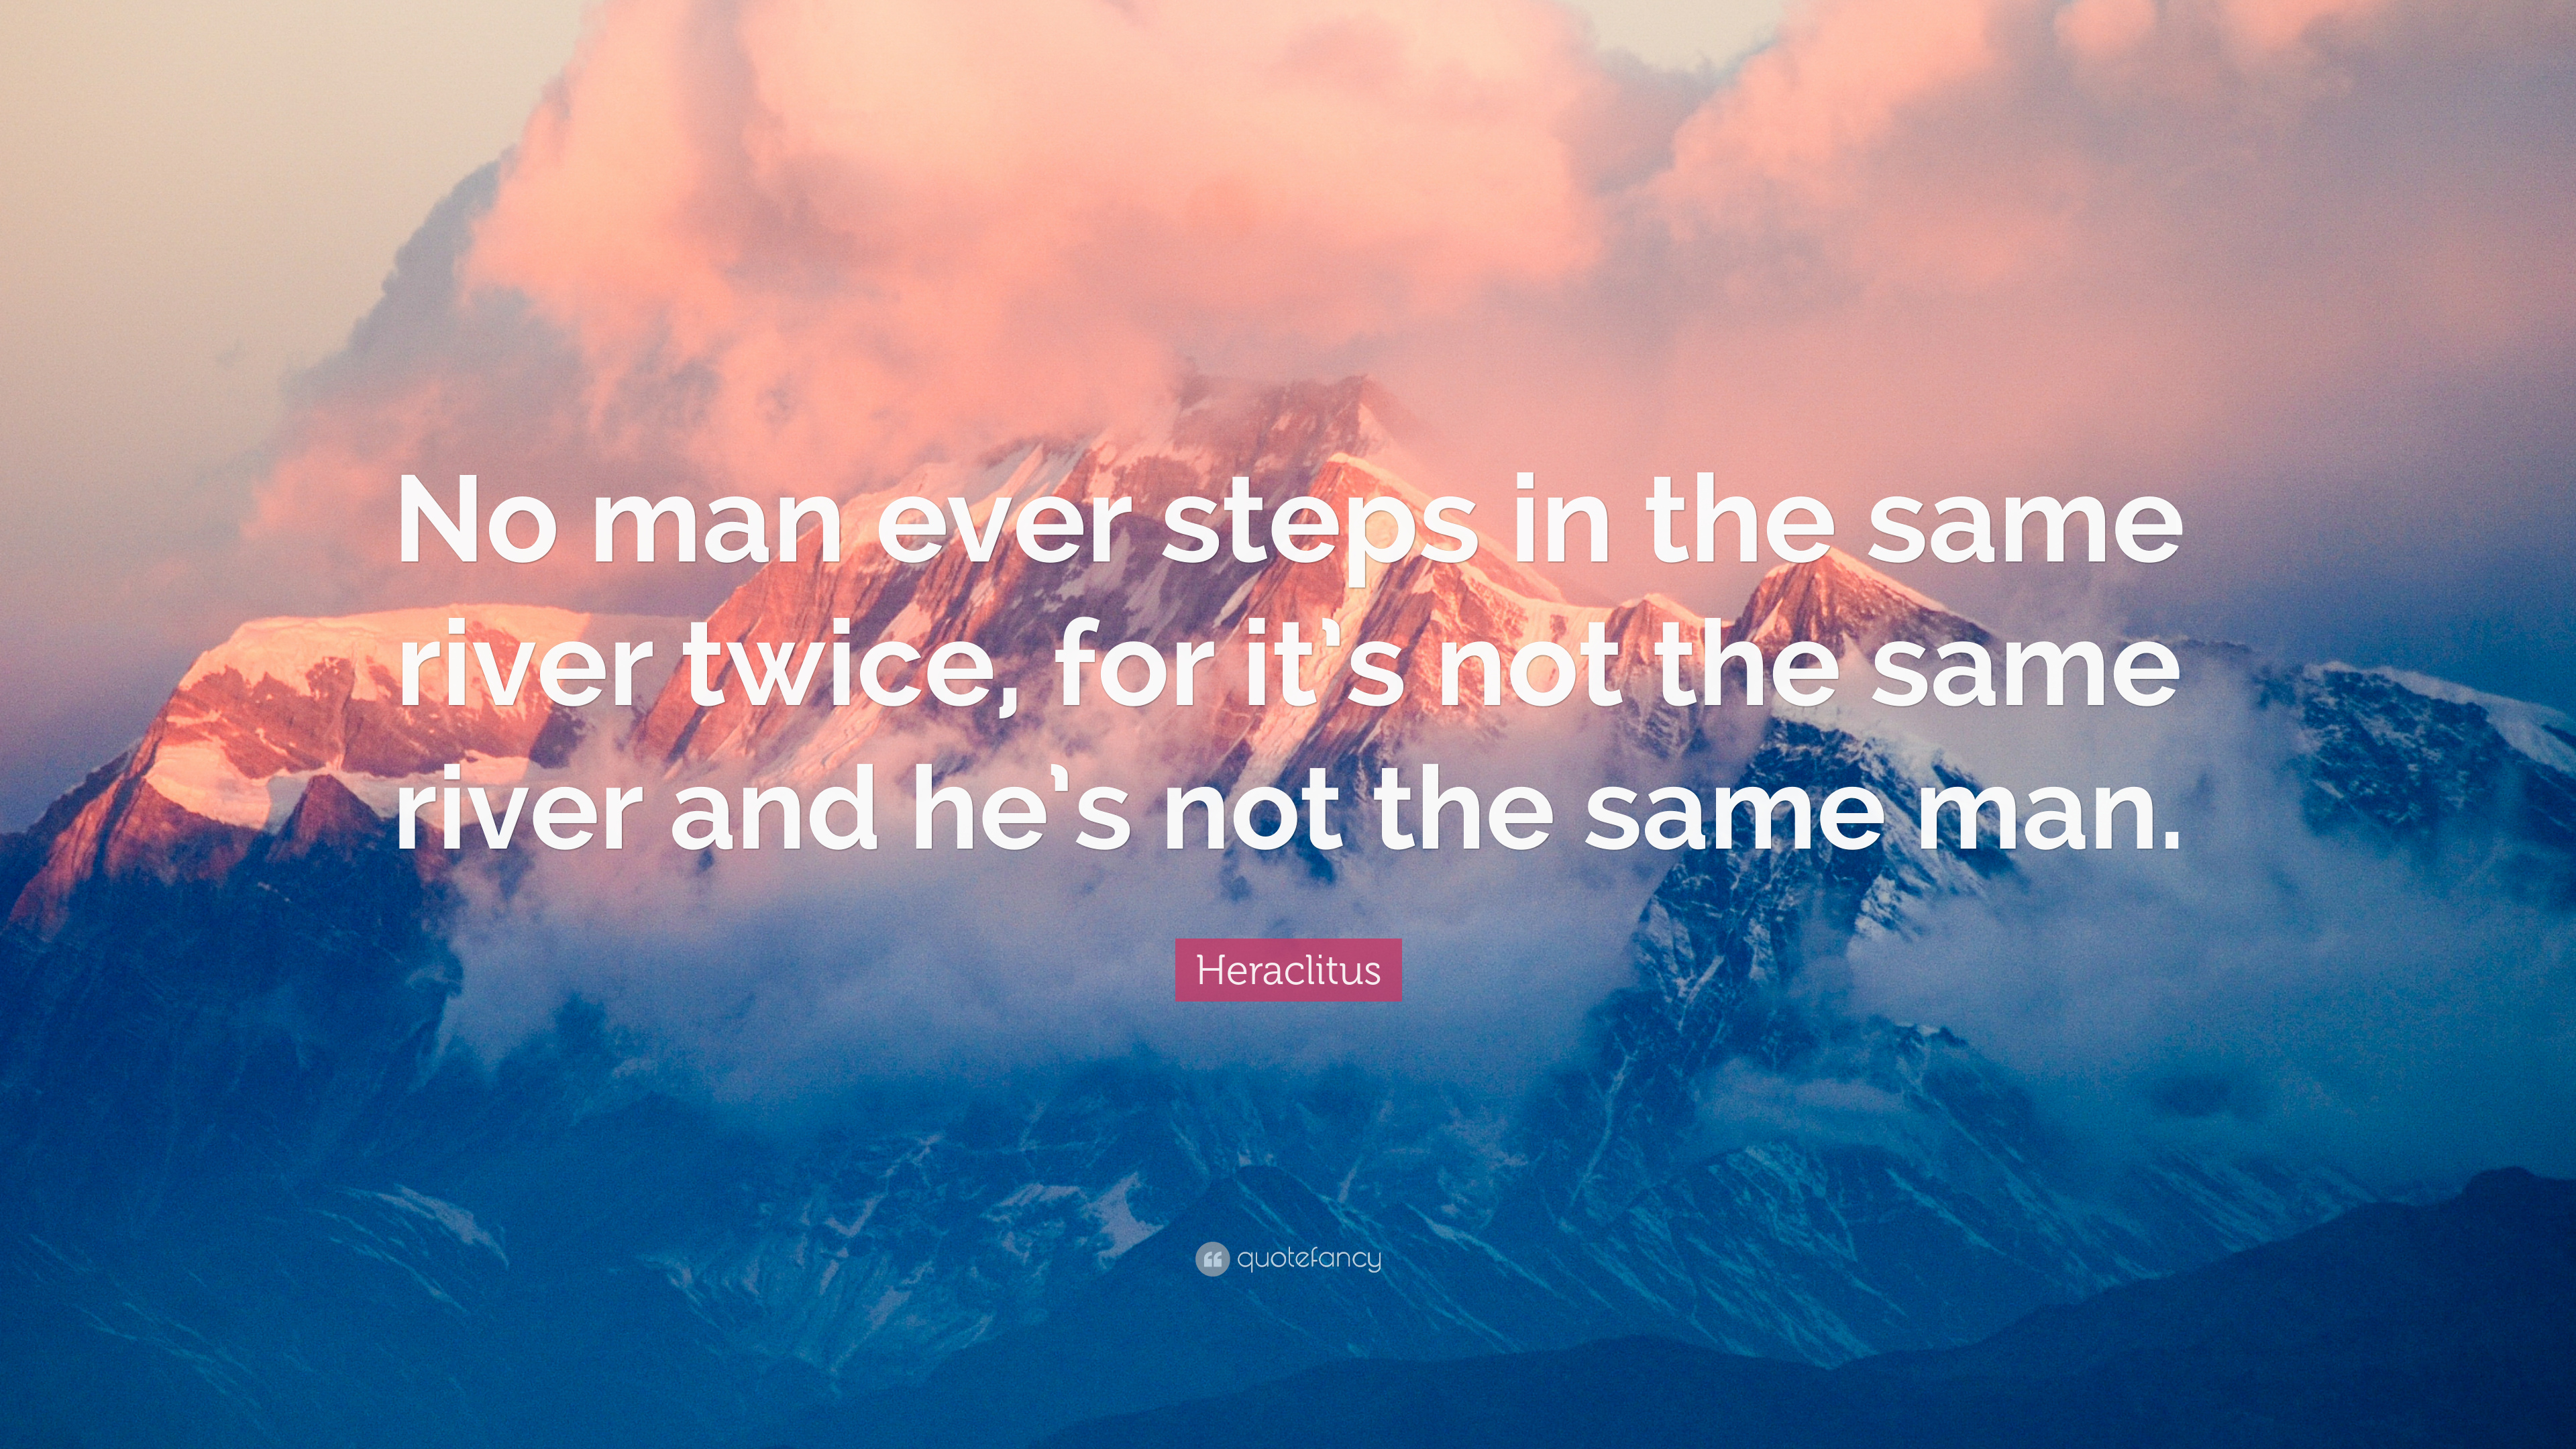 Heraclitus Quote: No man ever steps in the same river